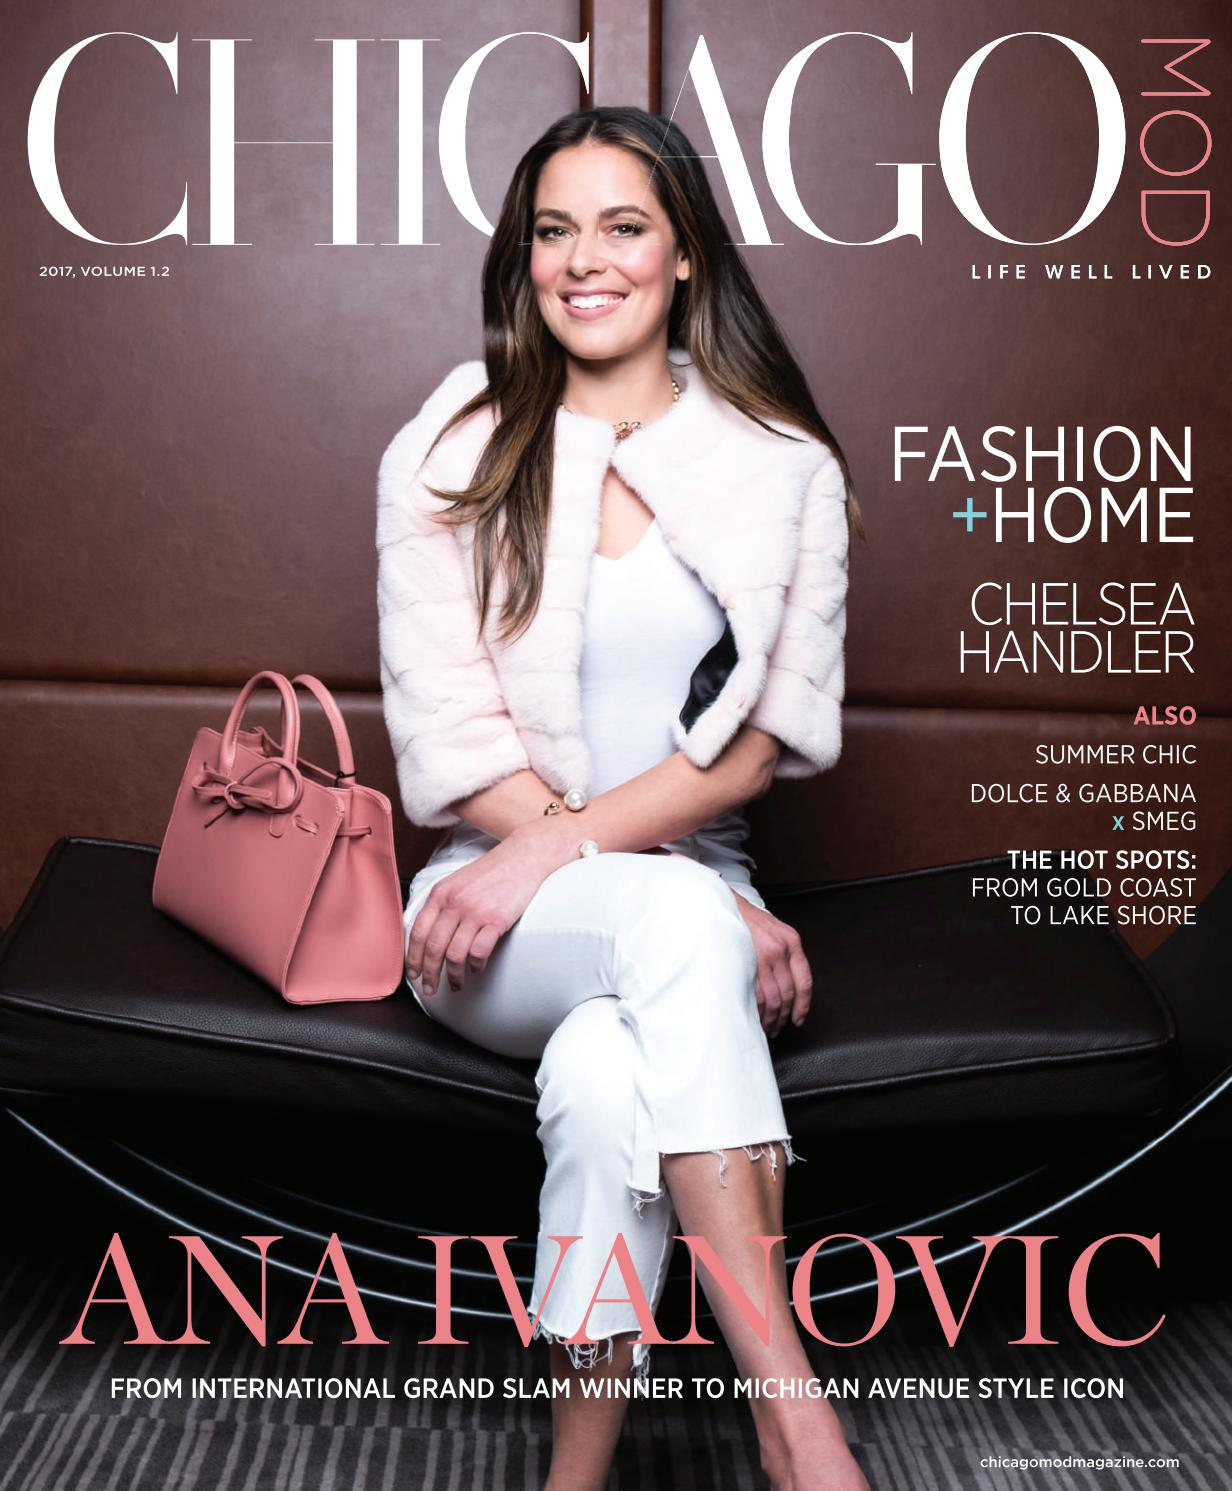 Ana Ivanovic Nue chicagomod - volume 1.2mod media, llc - issuu